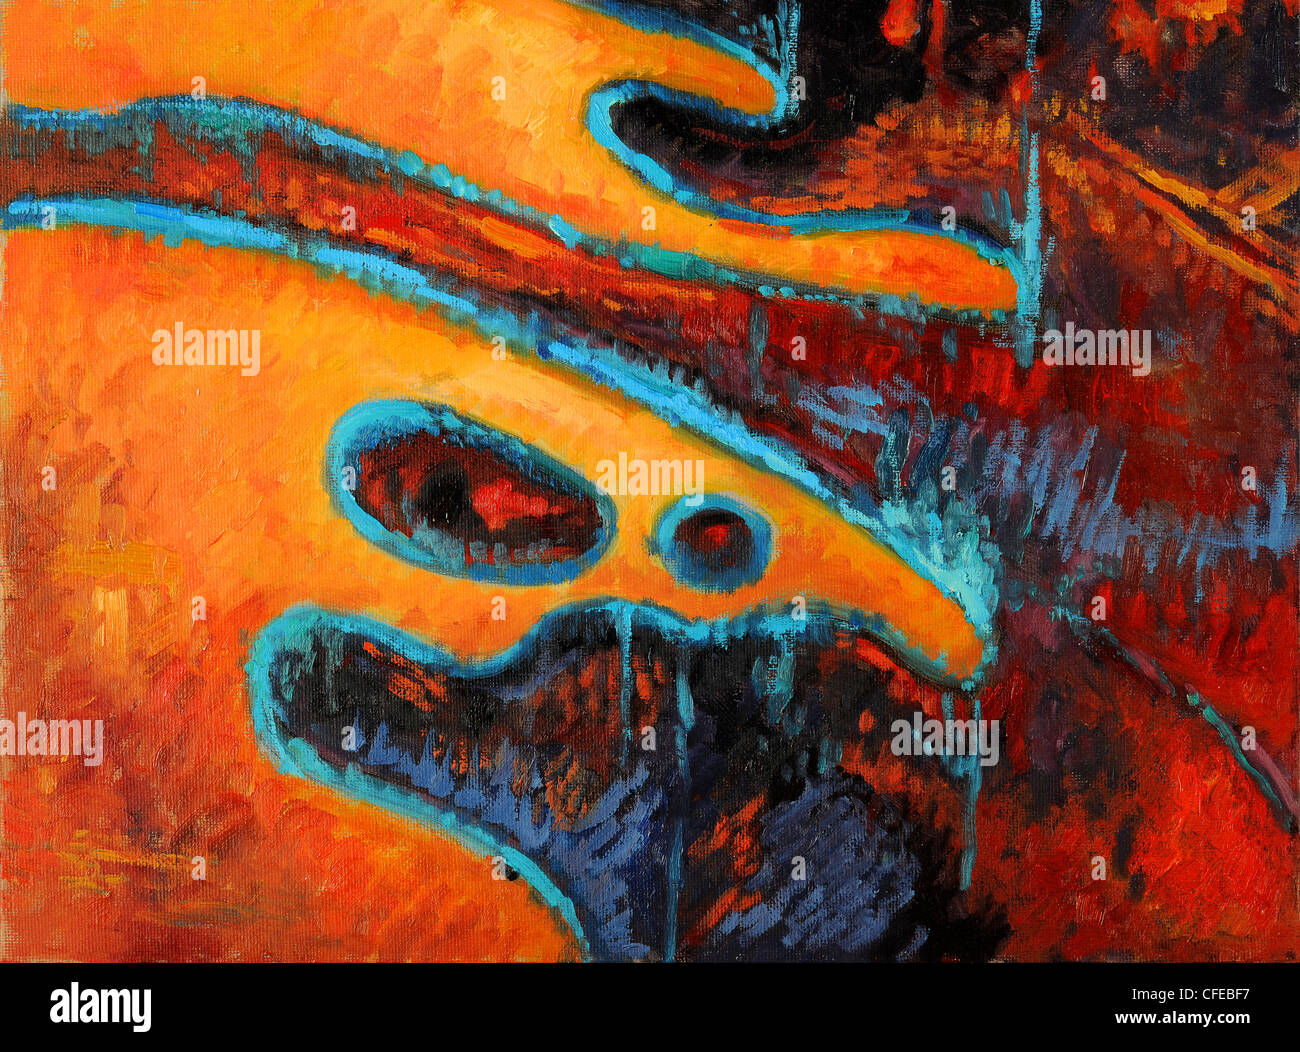 Abstract oil painting in warm colors with blue accents - Stock Image